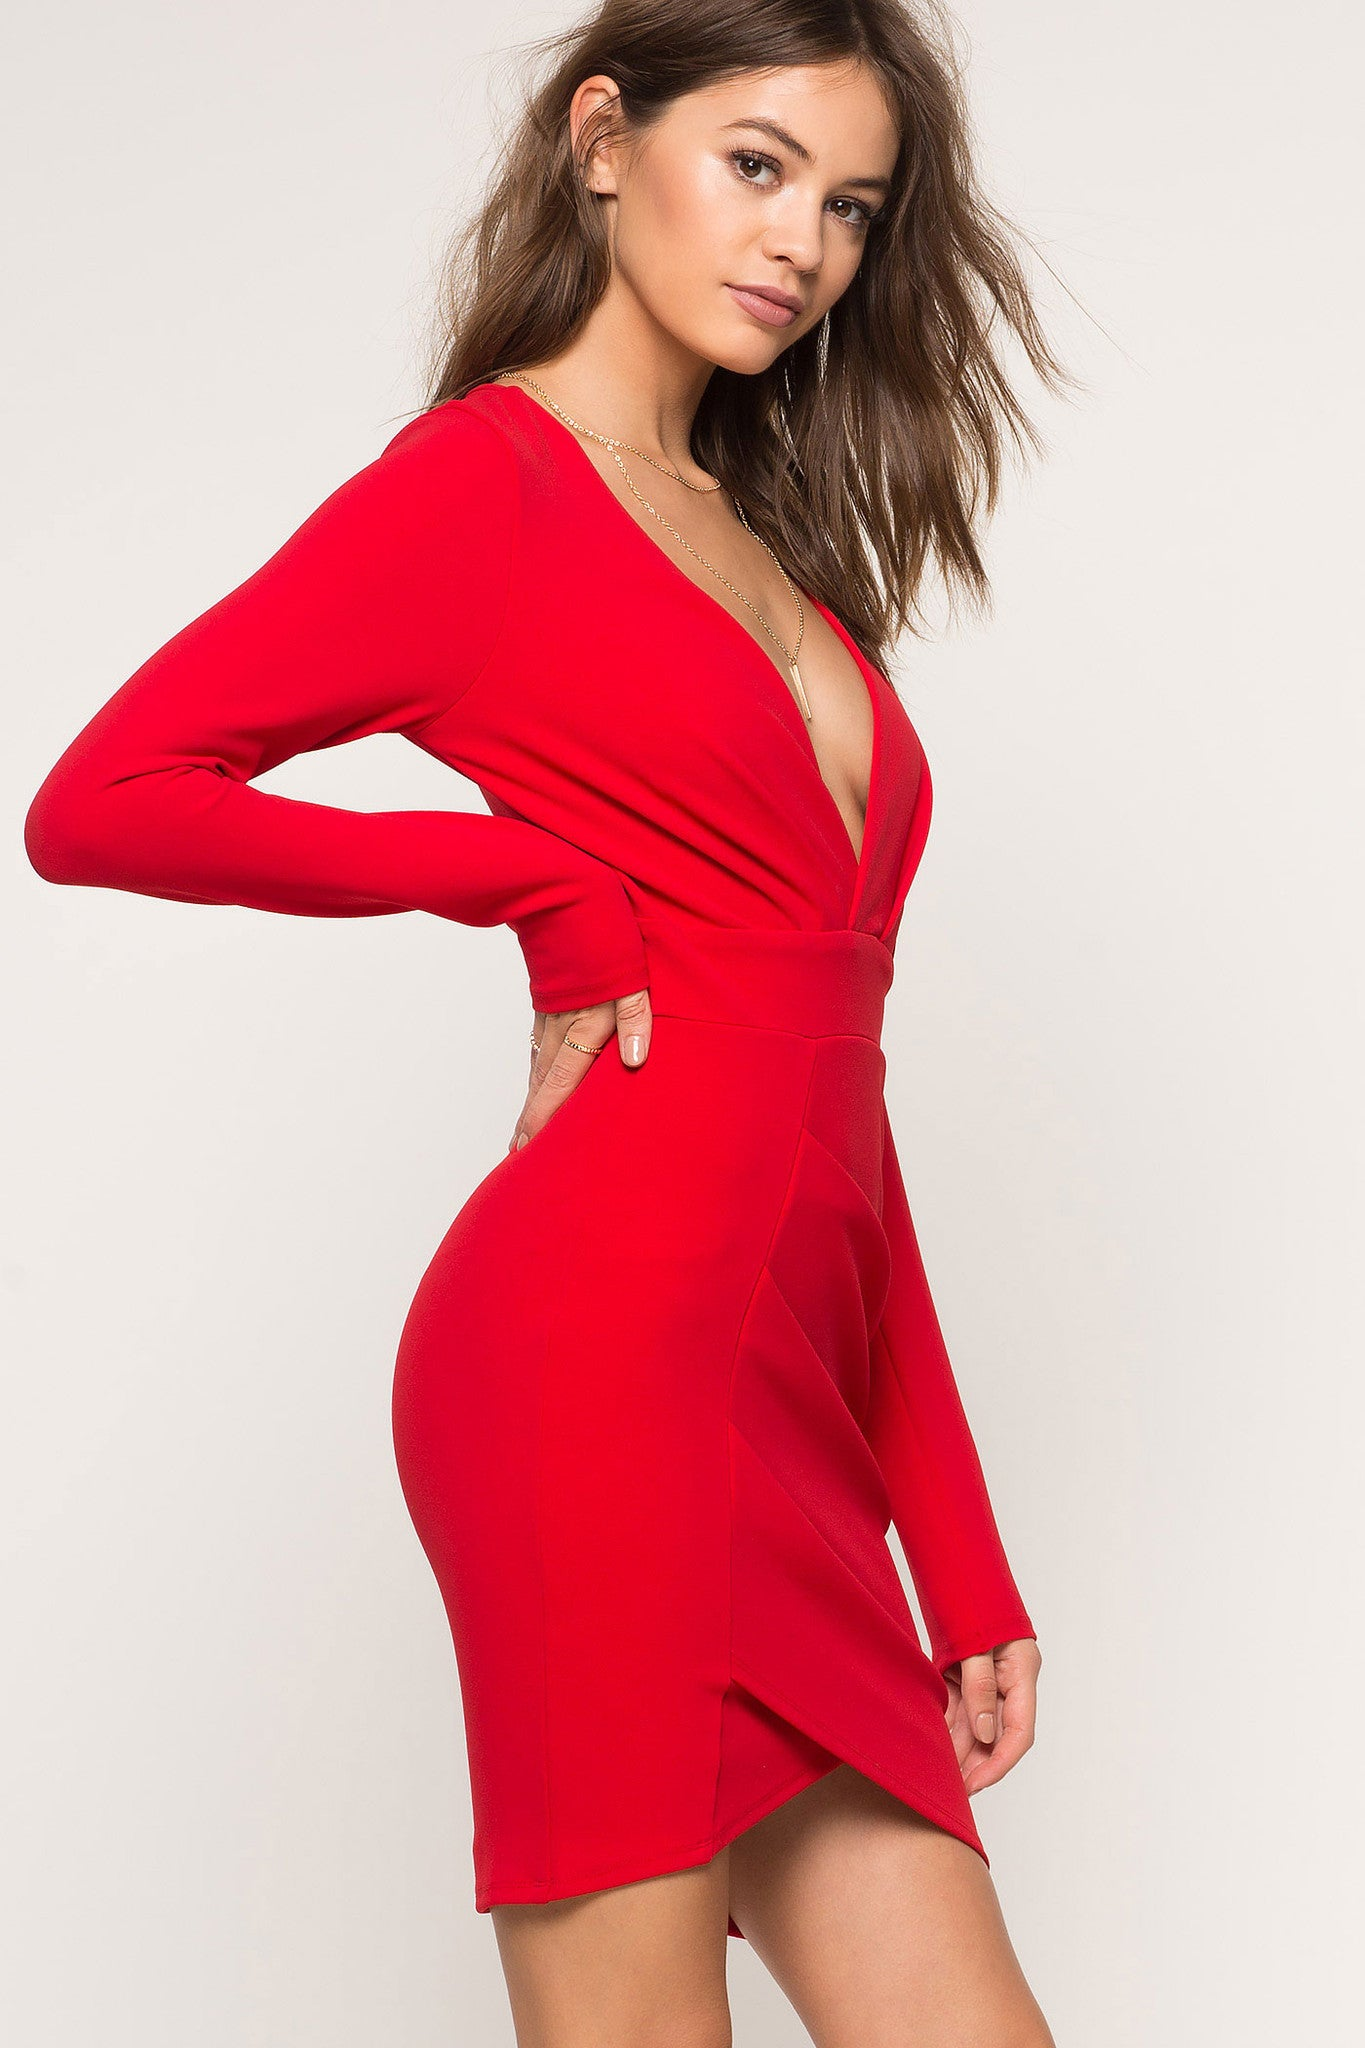 Surplice cocktail dress with sleeves